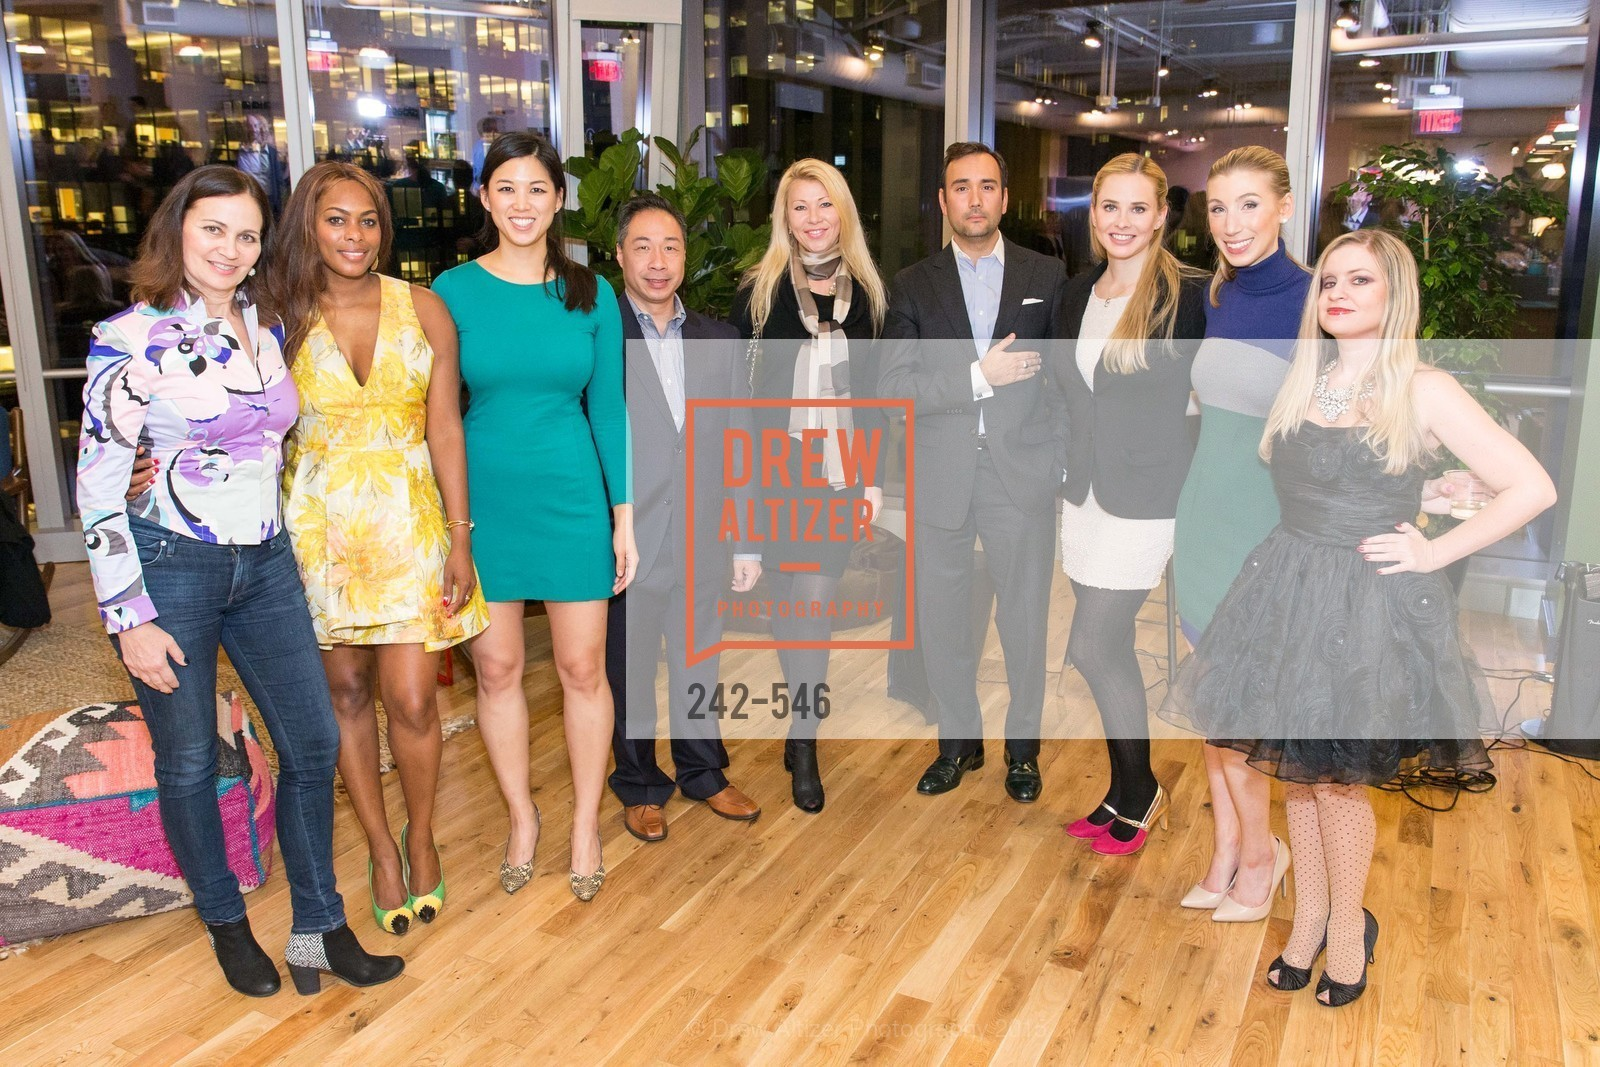 Jane Burkhard, Vanessa Jean-Baptiste, Emily Hu, Wilson Yan, Lena Gikkas, Chris Correa, Elizabeth Sgarrella, Maggie Winterfeldt Clark, Julie Hall, San Francisco Ballet ENCORE! Season Preview Party, WeWork. 535 Mission Street, 14th Floor, November 17th, 2015,Drew Altizer, Drew Altizer Photography, full-service agency, private events, San Francisco photographer, photographer california